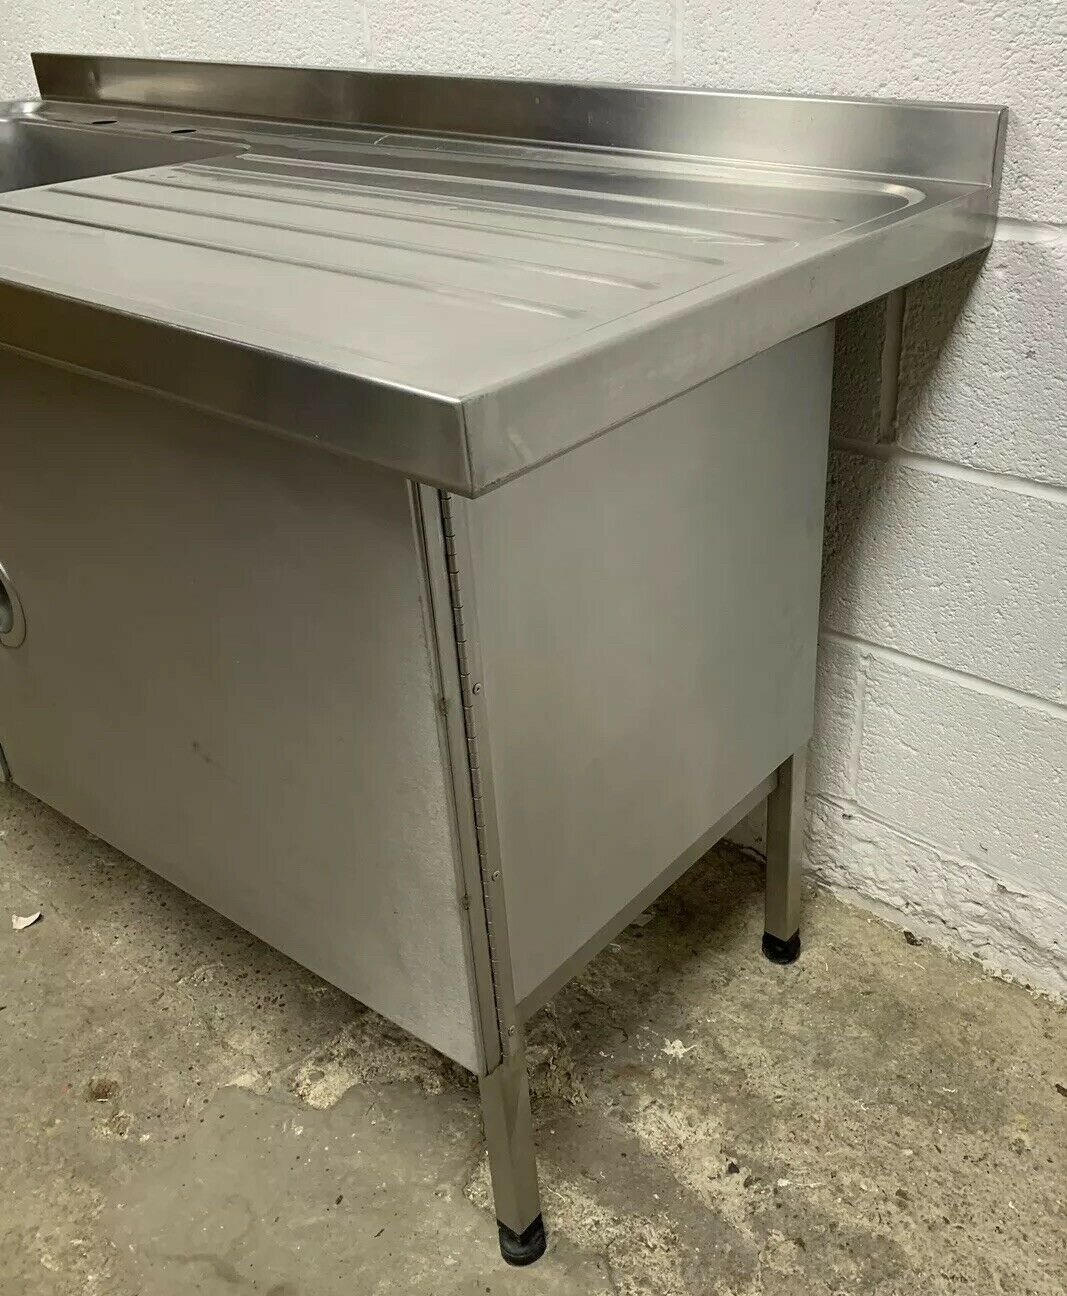 Lot 55 - Sissons Stainless Steel Single Bowl Sink with Righthand Drainer and Cupboard Unit